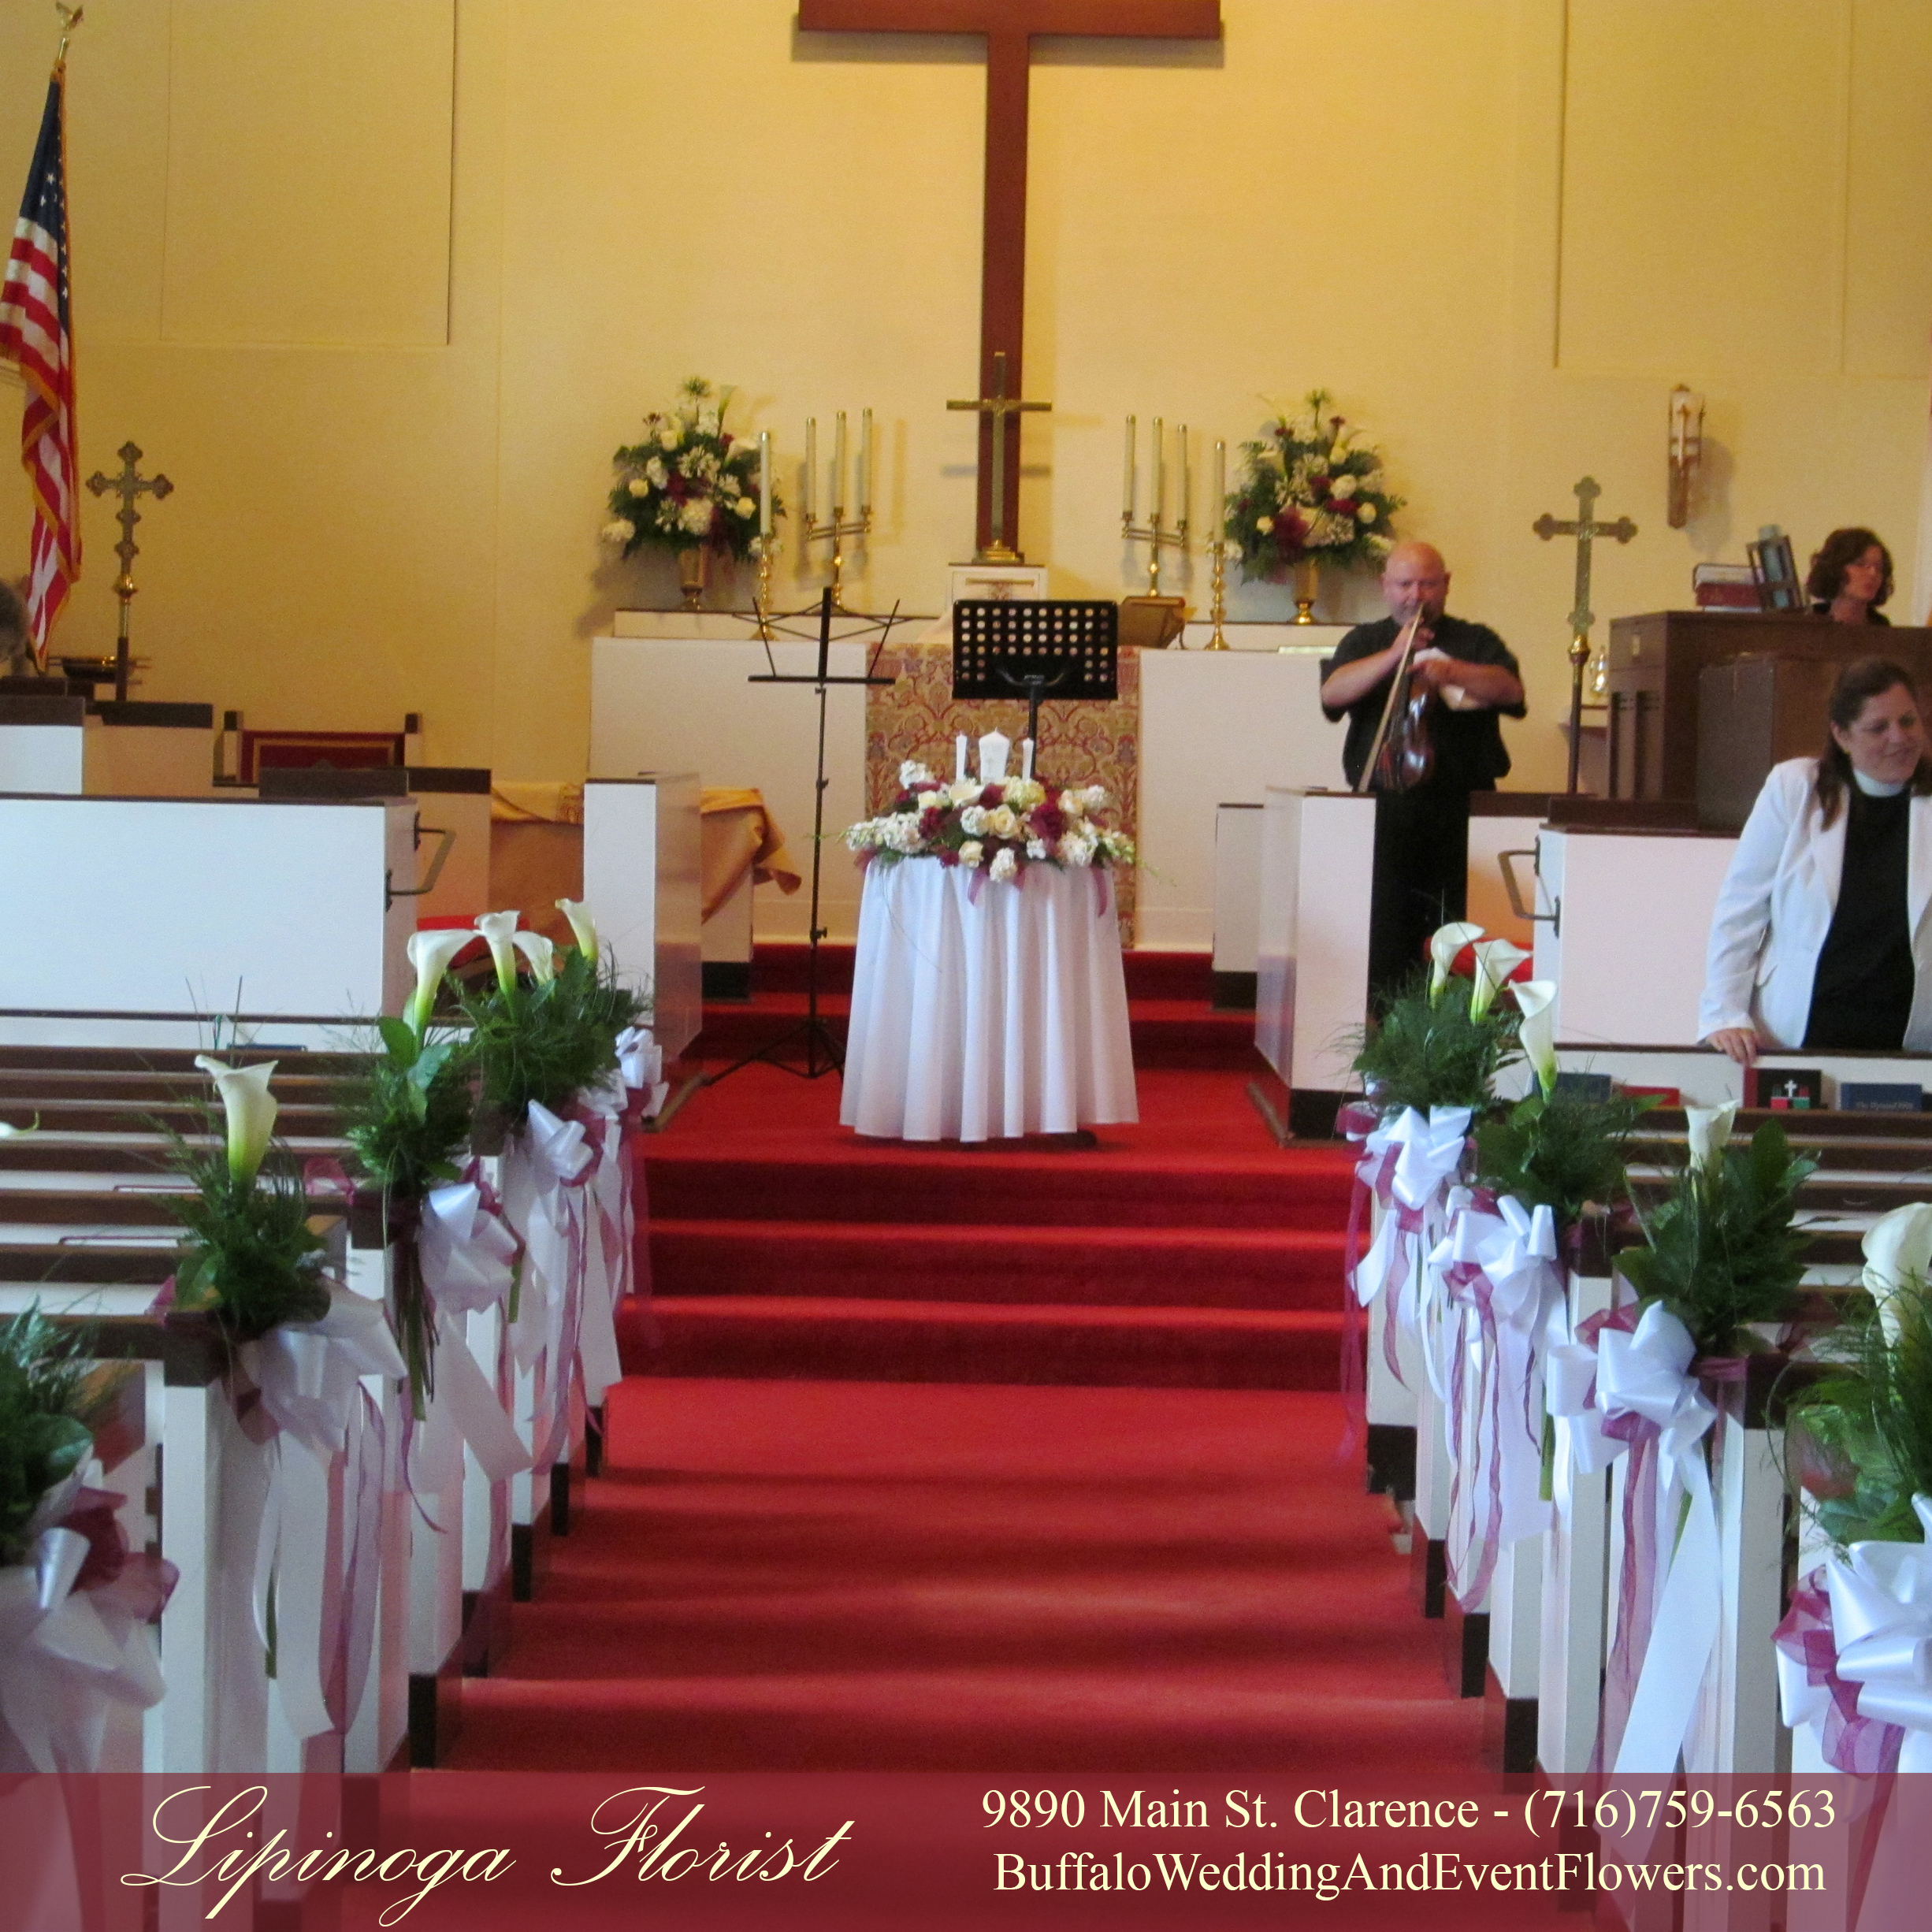 Wedding Flower Arrangements For Church: Buffalo Wedding & Event Flowers